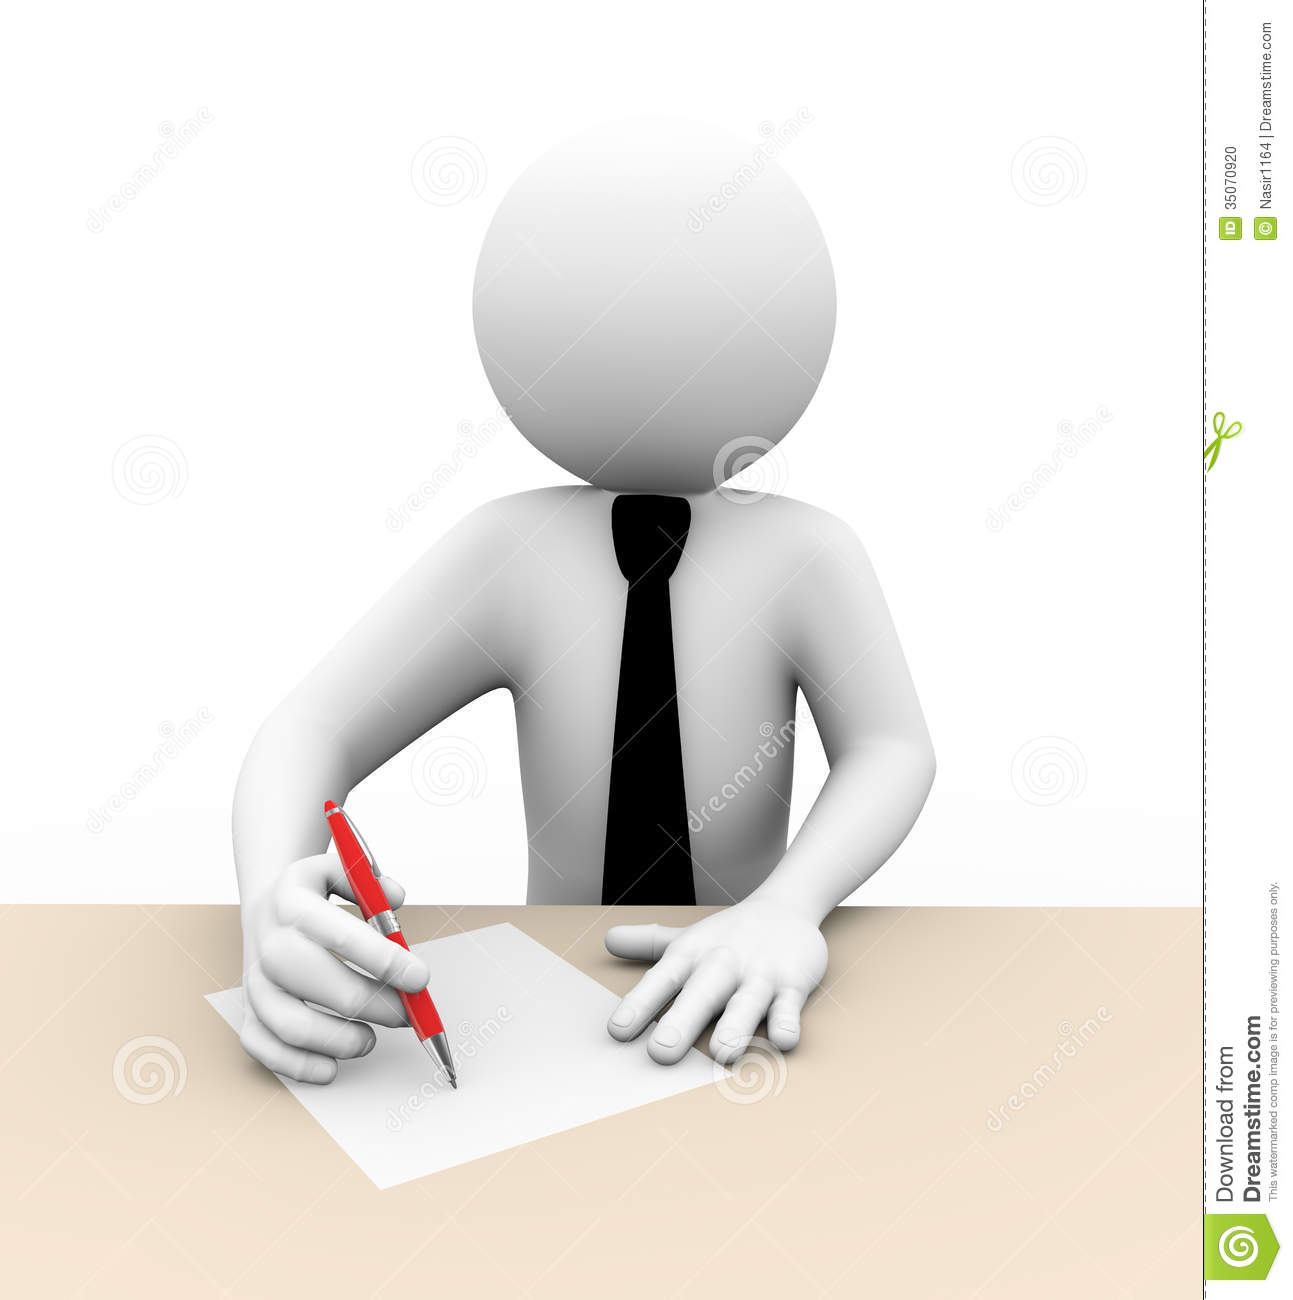 d businessman writing illustration stock illustration image  3d businessman writing illustration